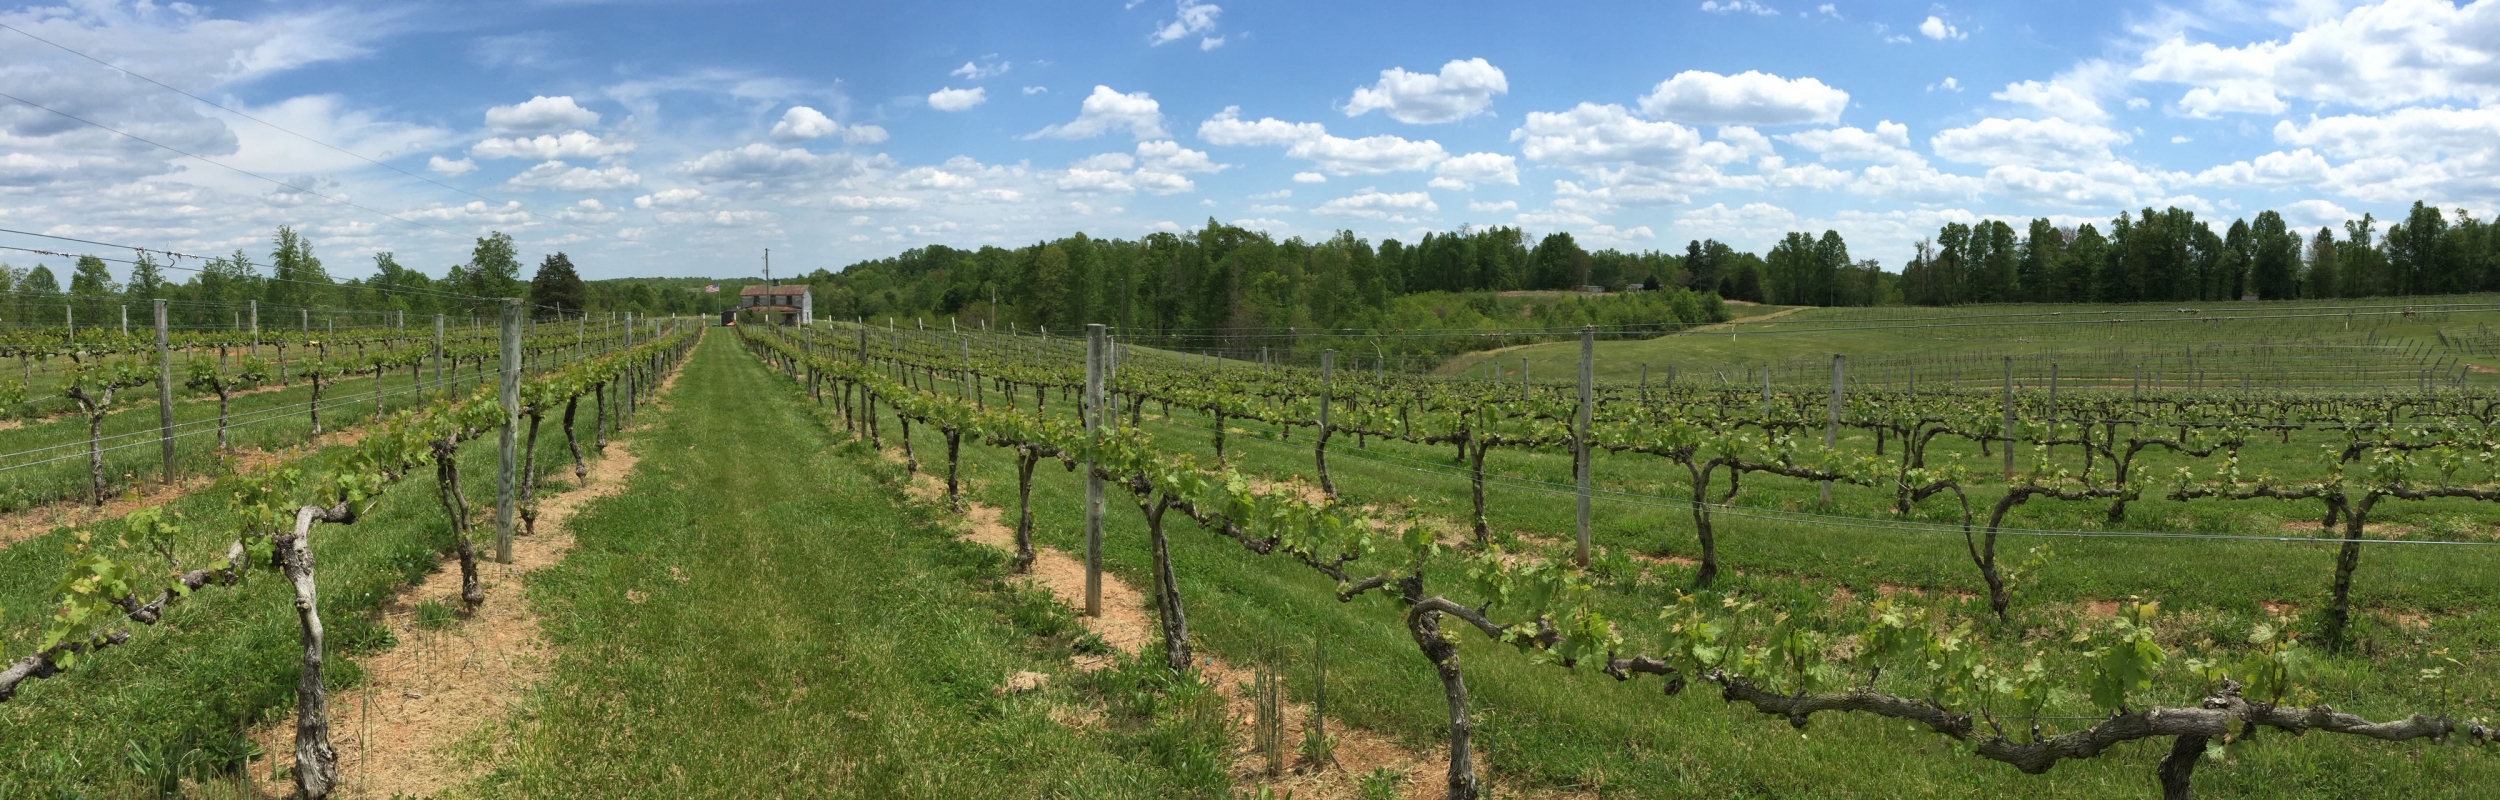 vineyard_wideangle